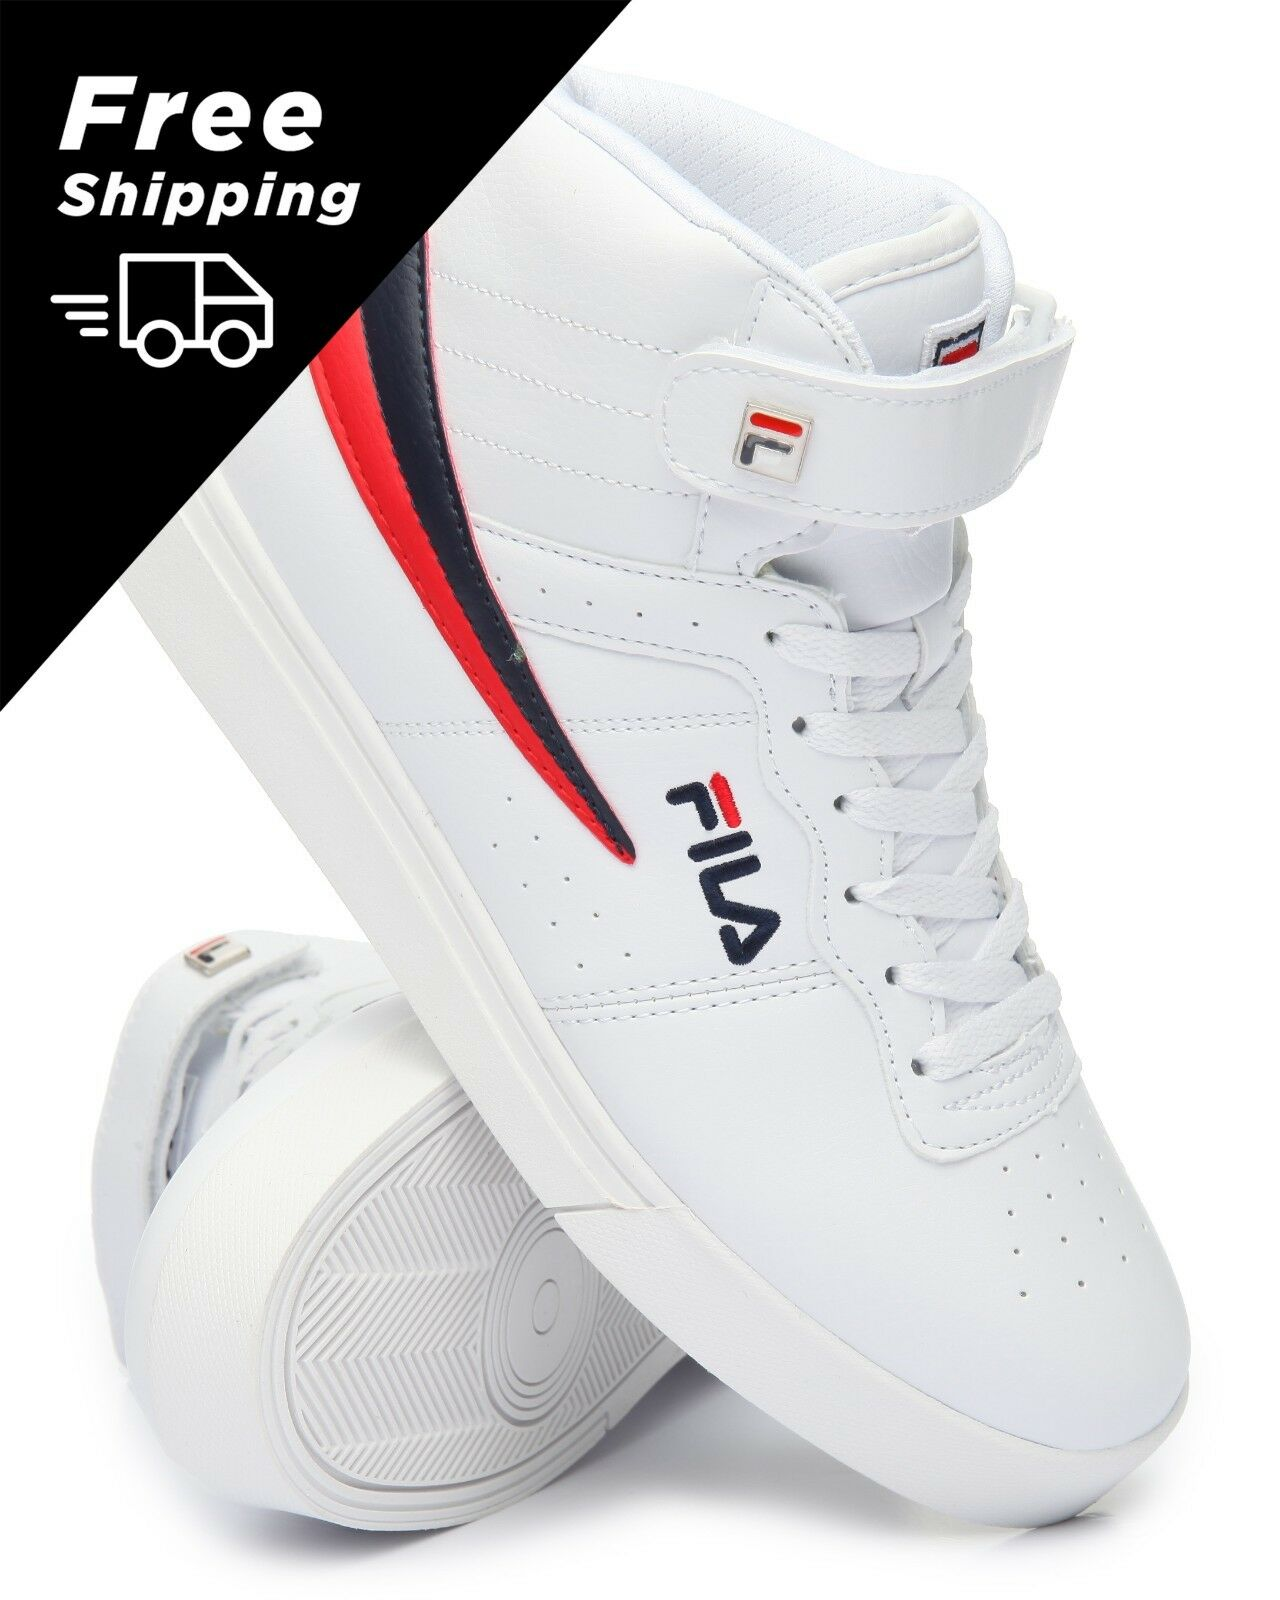 NEW 2018 MEN'S FILA VULC 13 MID PLUS WHITE RED blueE CLASSIC HIGH TOP SNEAKERS